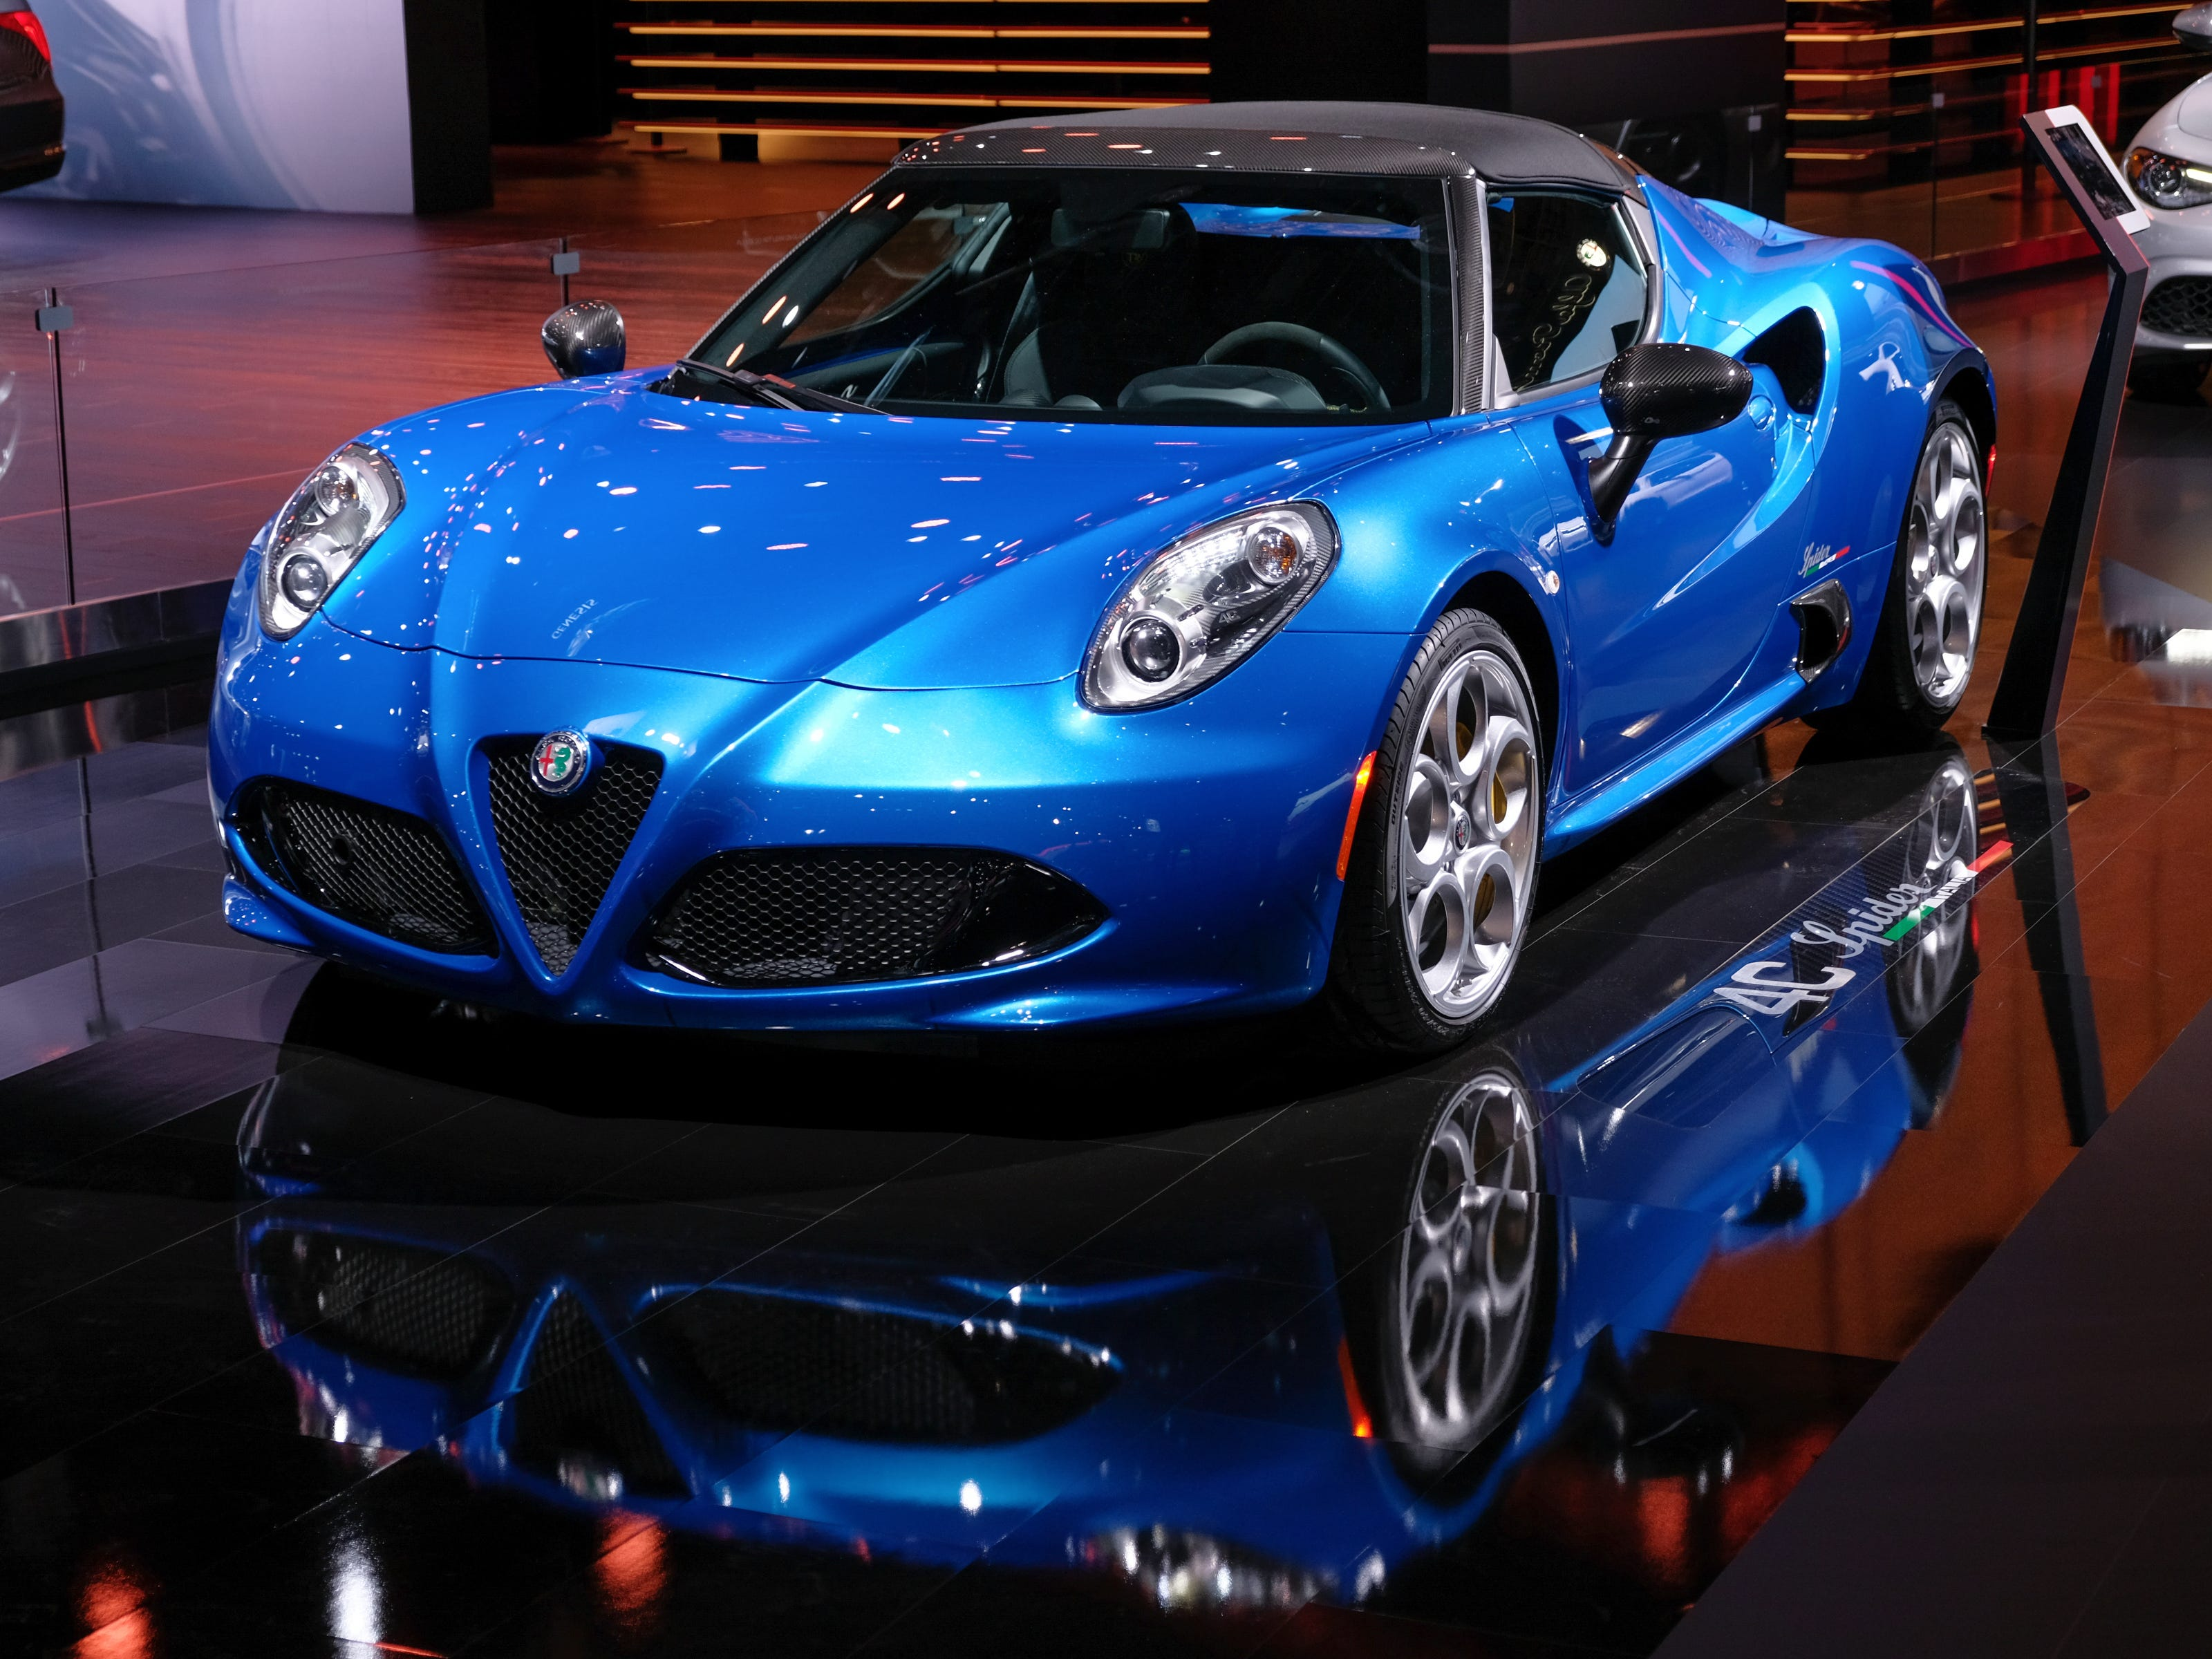 2019 Alfa Romeo 4C Spider is seen on the stage during the 2019 North American International Auto Show held at Cobo Center in downtown Detroit on Tuesday, Jan. 15, 2019.  (Via OlyDrop)